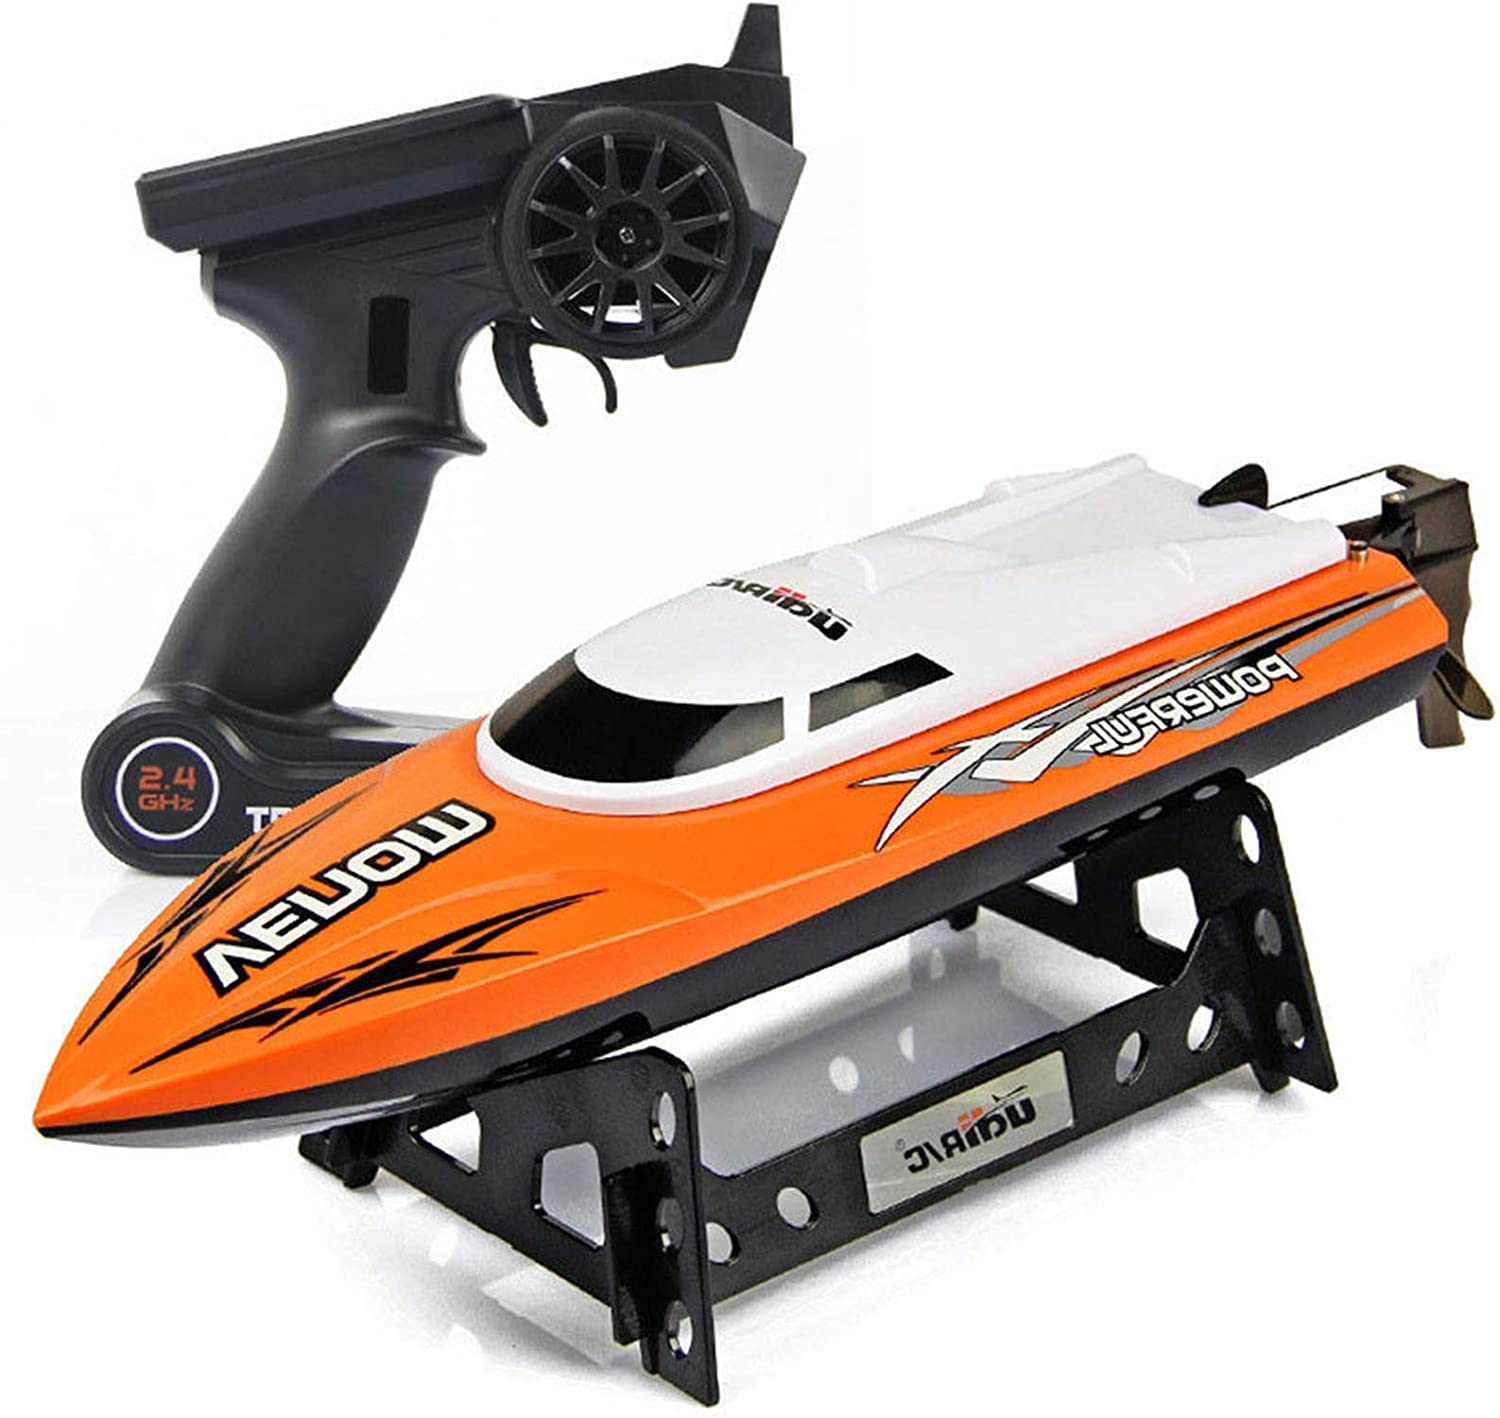 Top 8 Best Remote Control Boats For Beginners - 2020 (Best RC Boats) 7